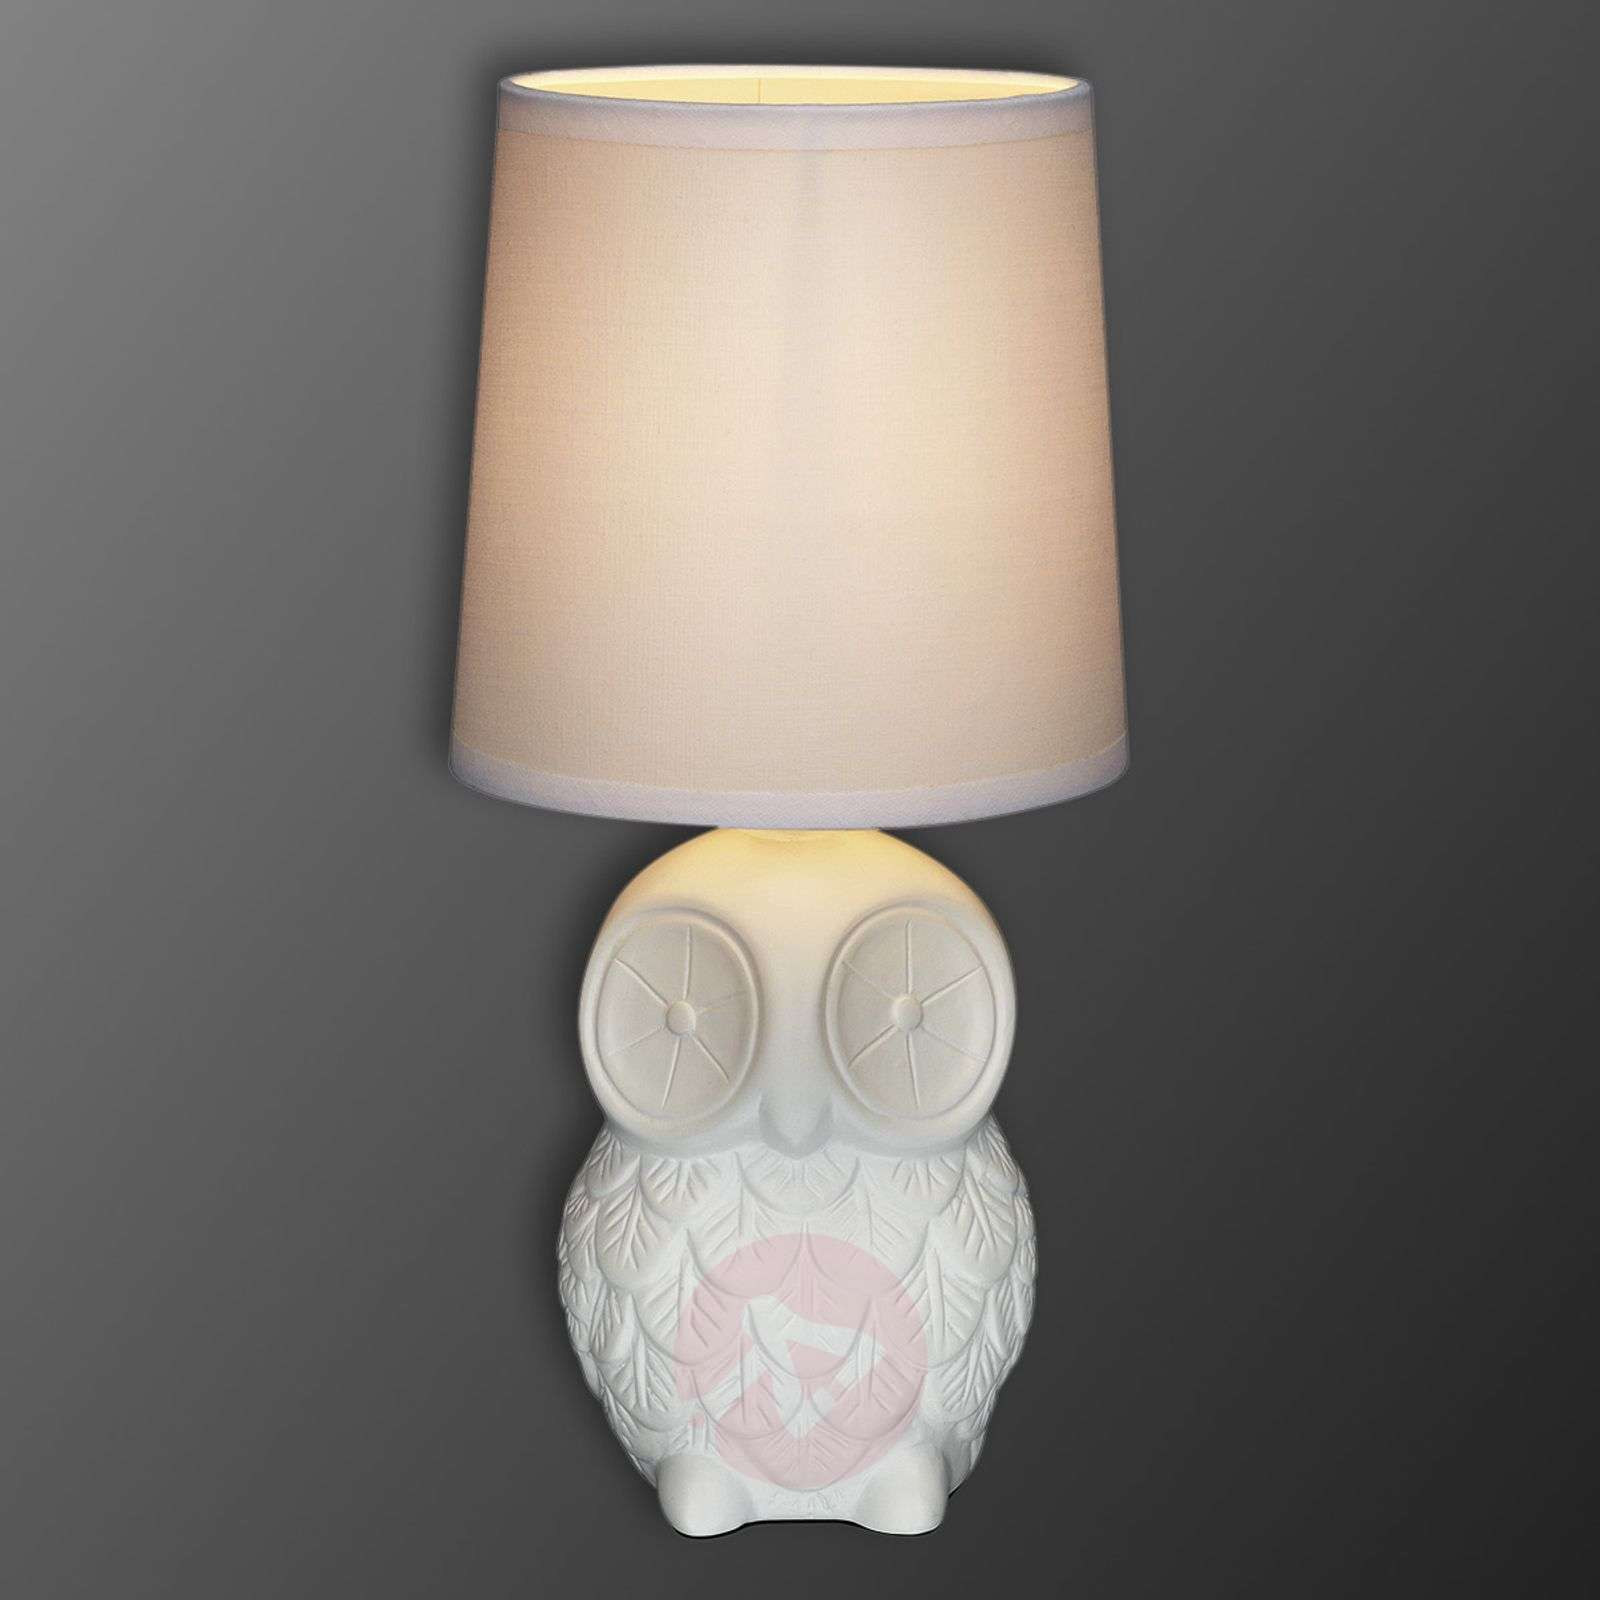 Helge owl table lamp with white fabric lampshade-6506124-01